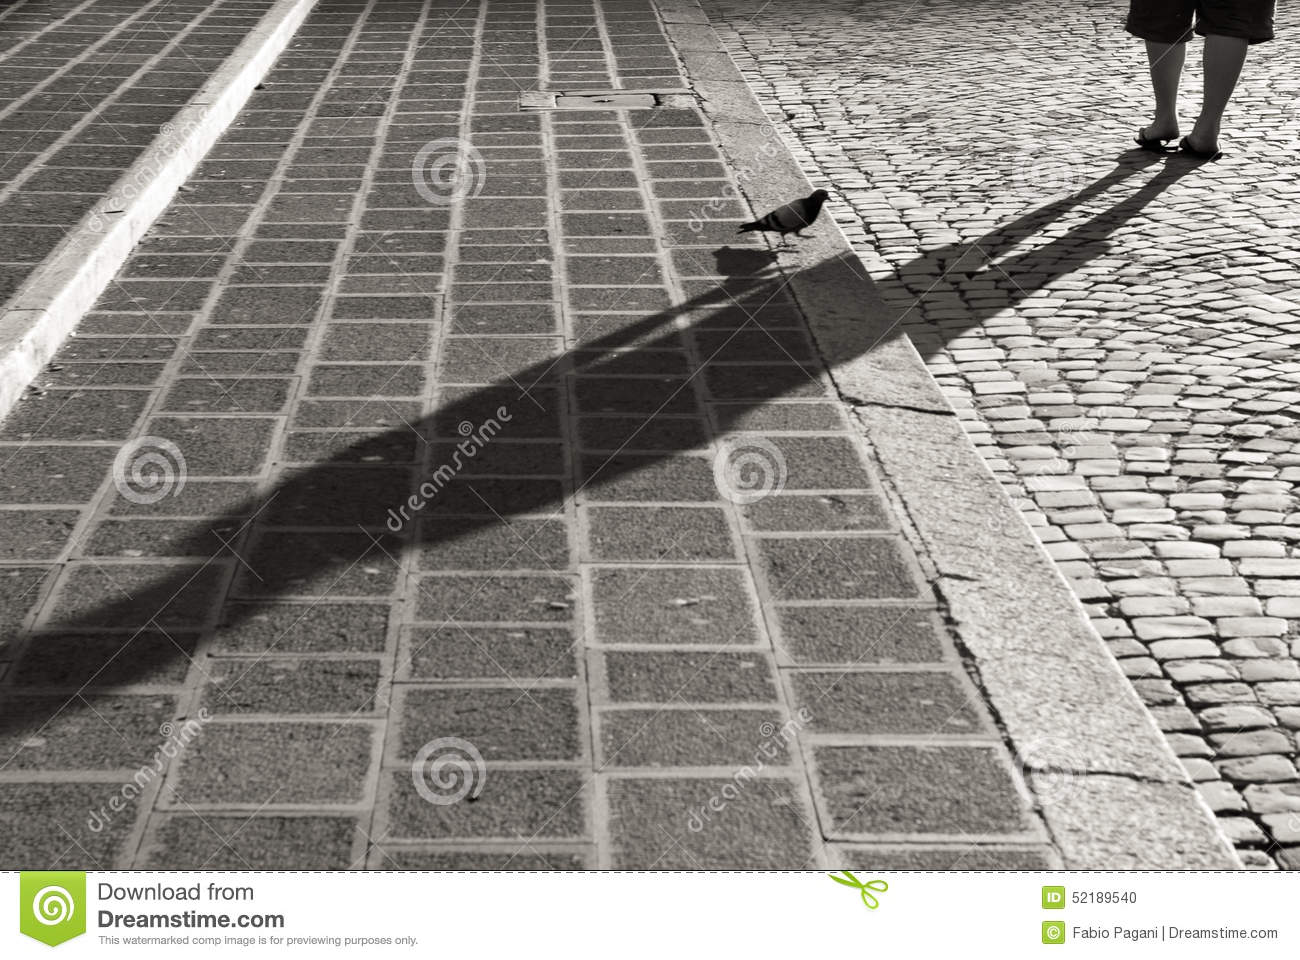 Pigeon on cobblestone stairs in Rome, black and white